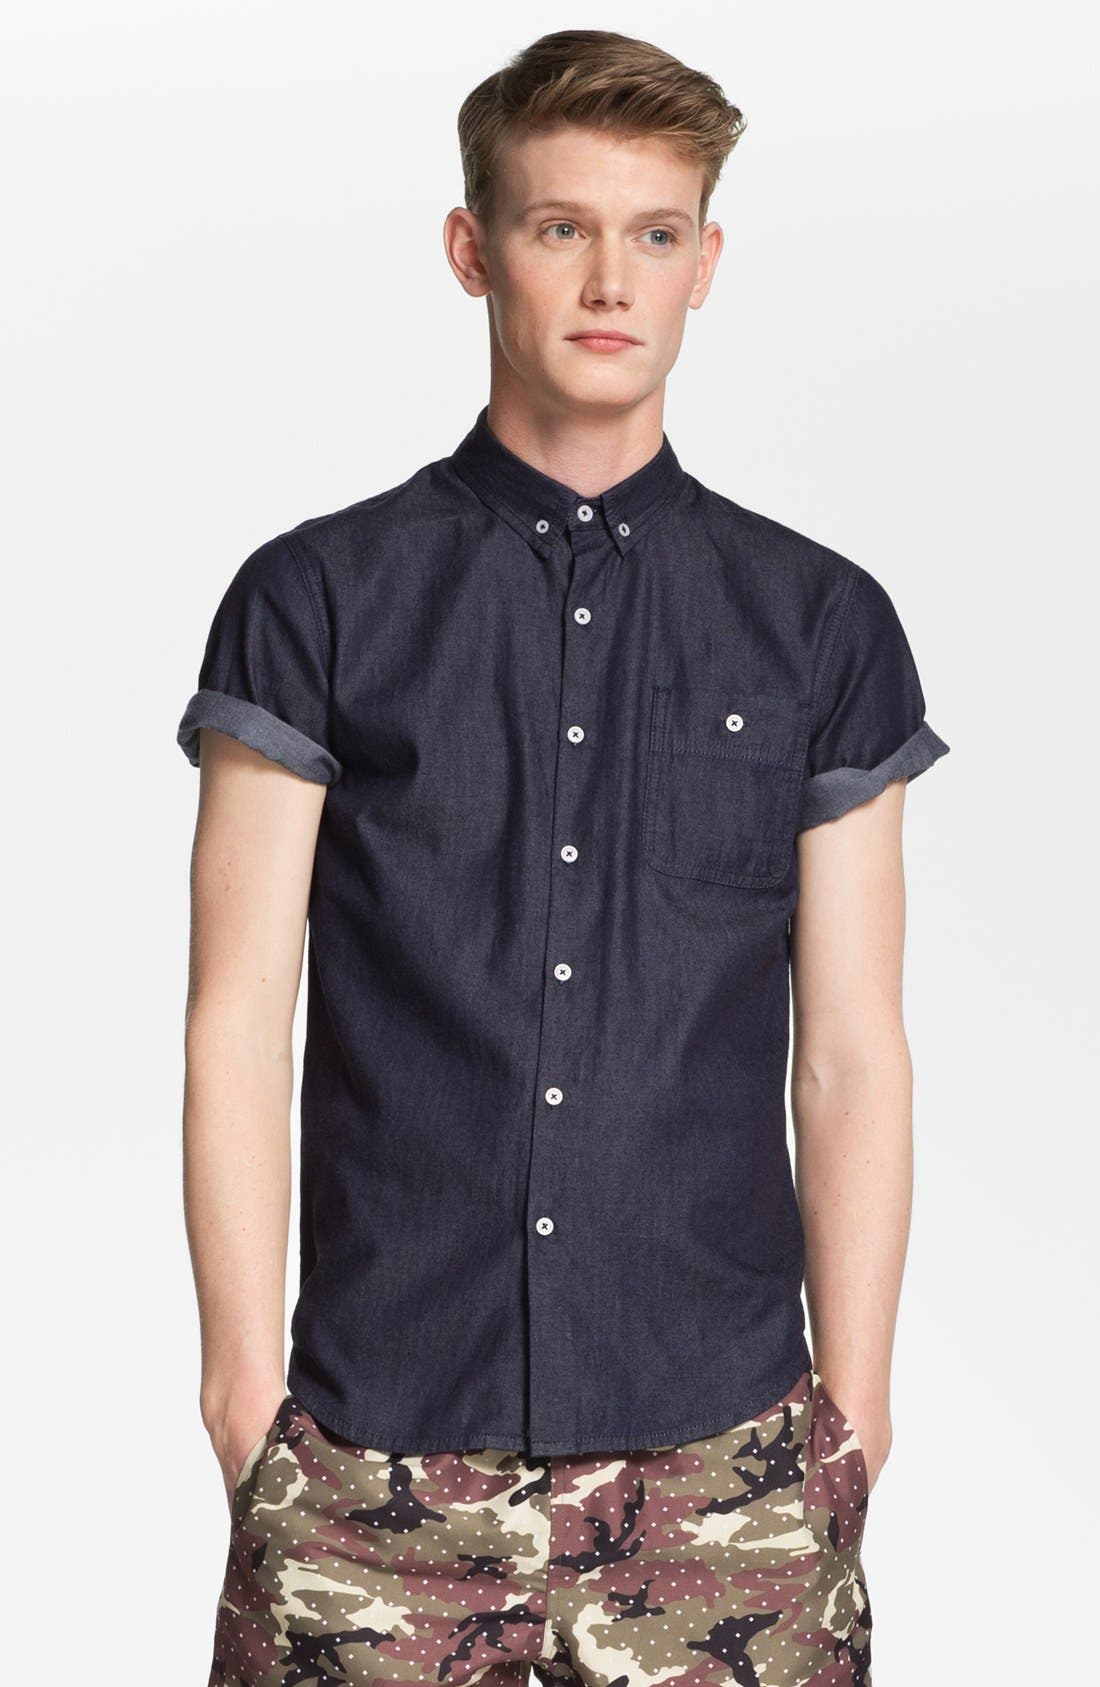 Alternate Image 1 Selected - Topman 'Smart' Short Sleeve Chambray Denim Shirt